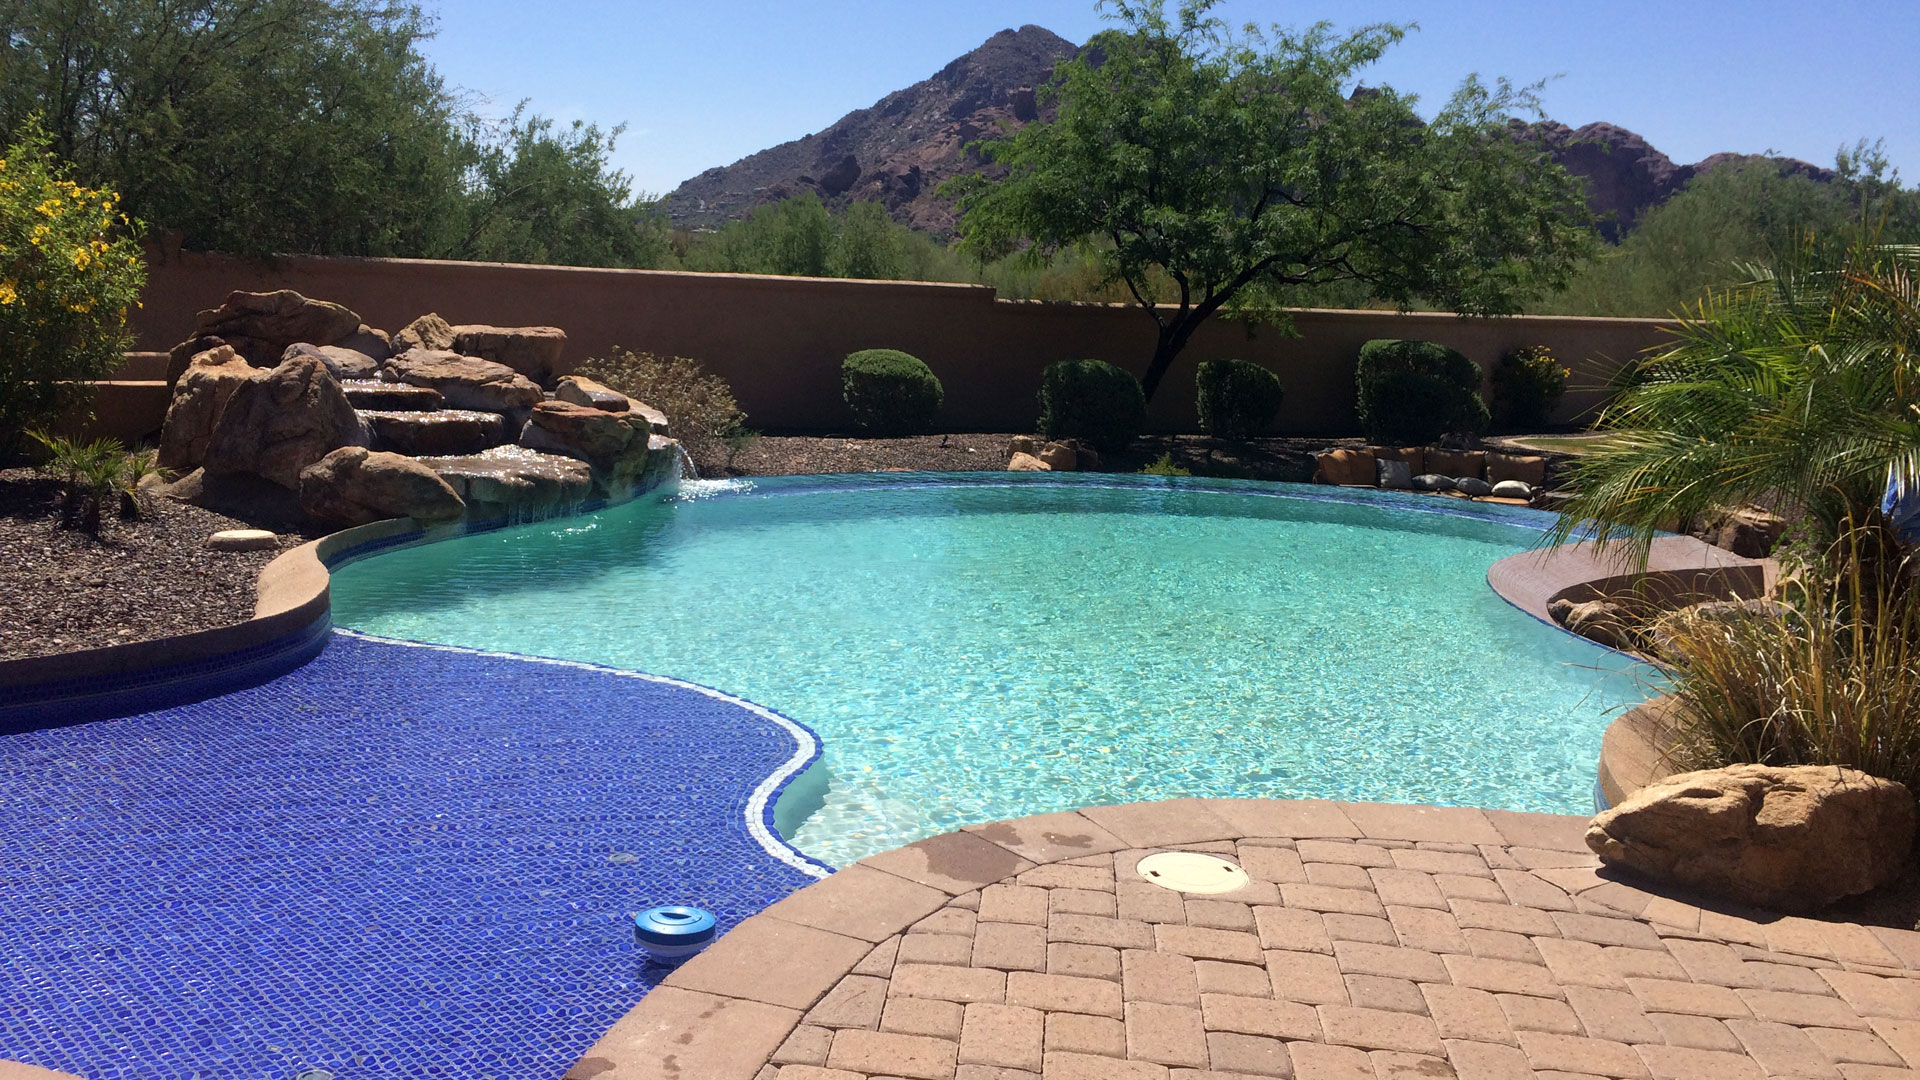 Apex Pools Professional pool cleaning service and expert